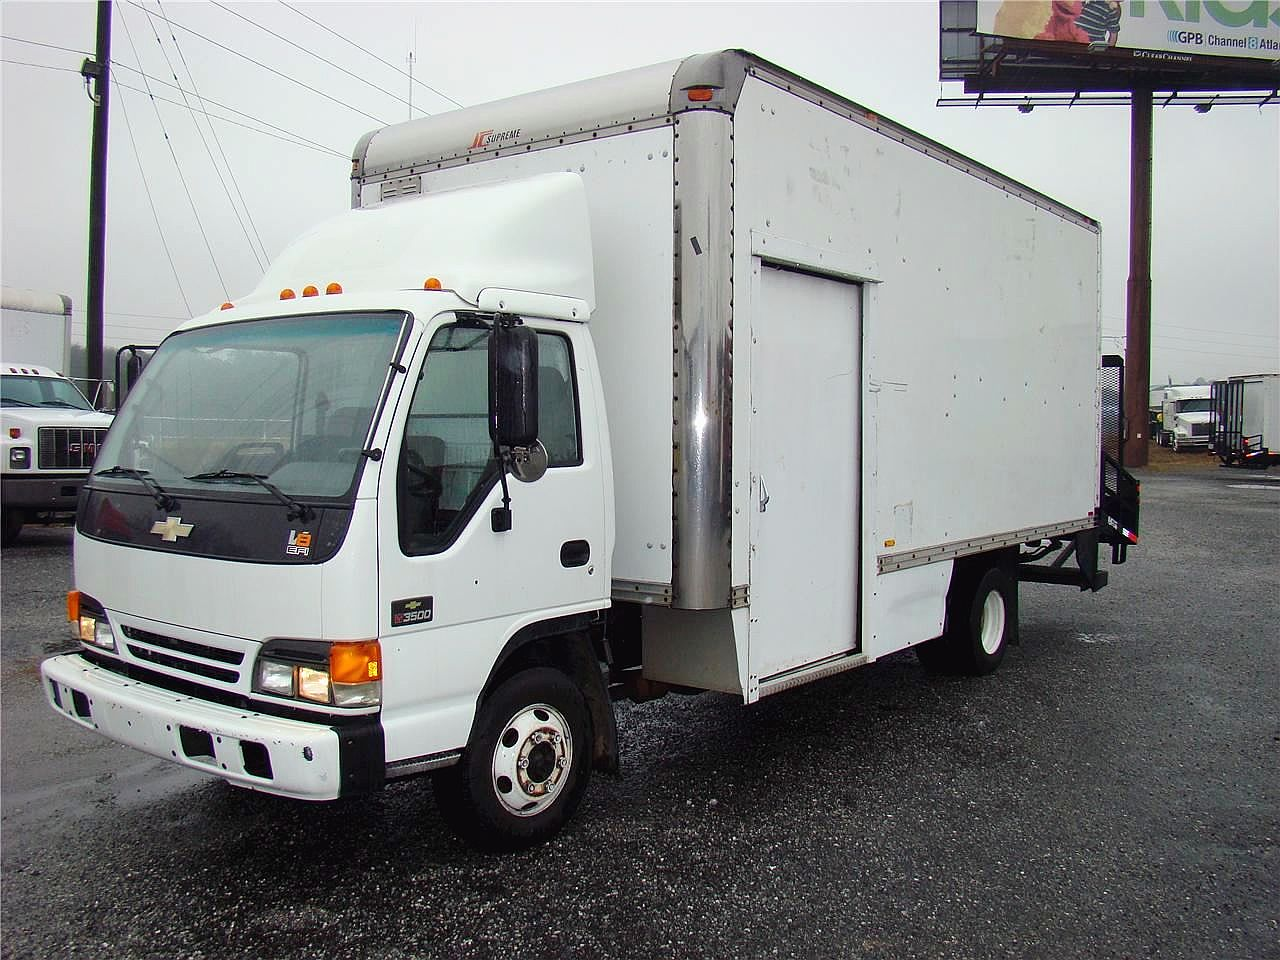 Chevrolet W3500 photos - PhotoGallery with 3 pics | CarsBase com